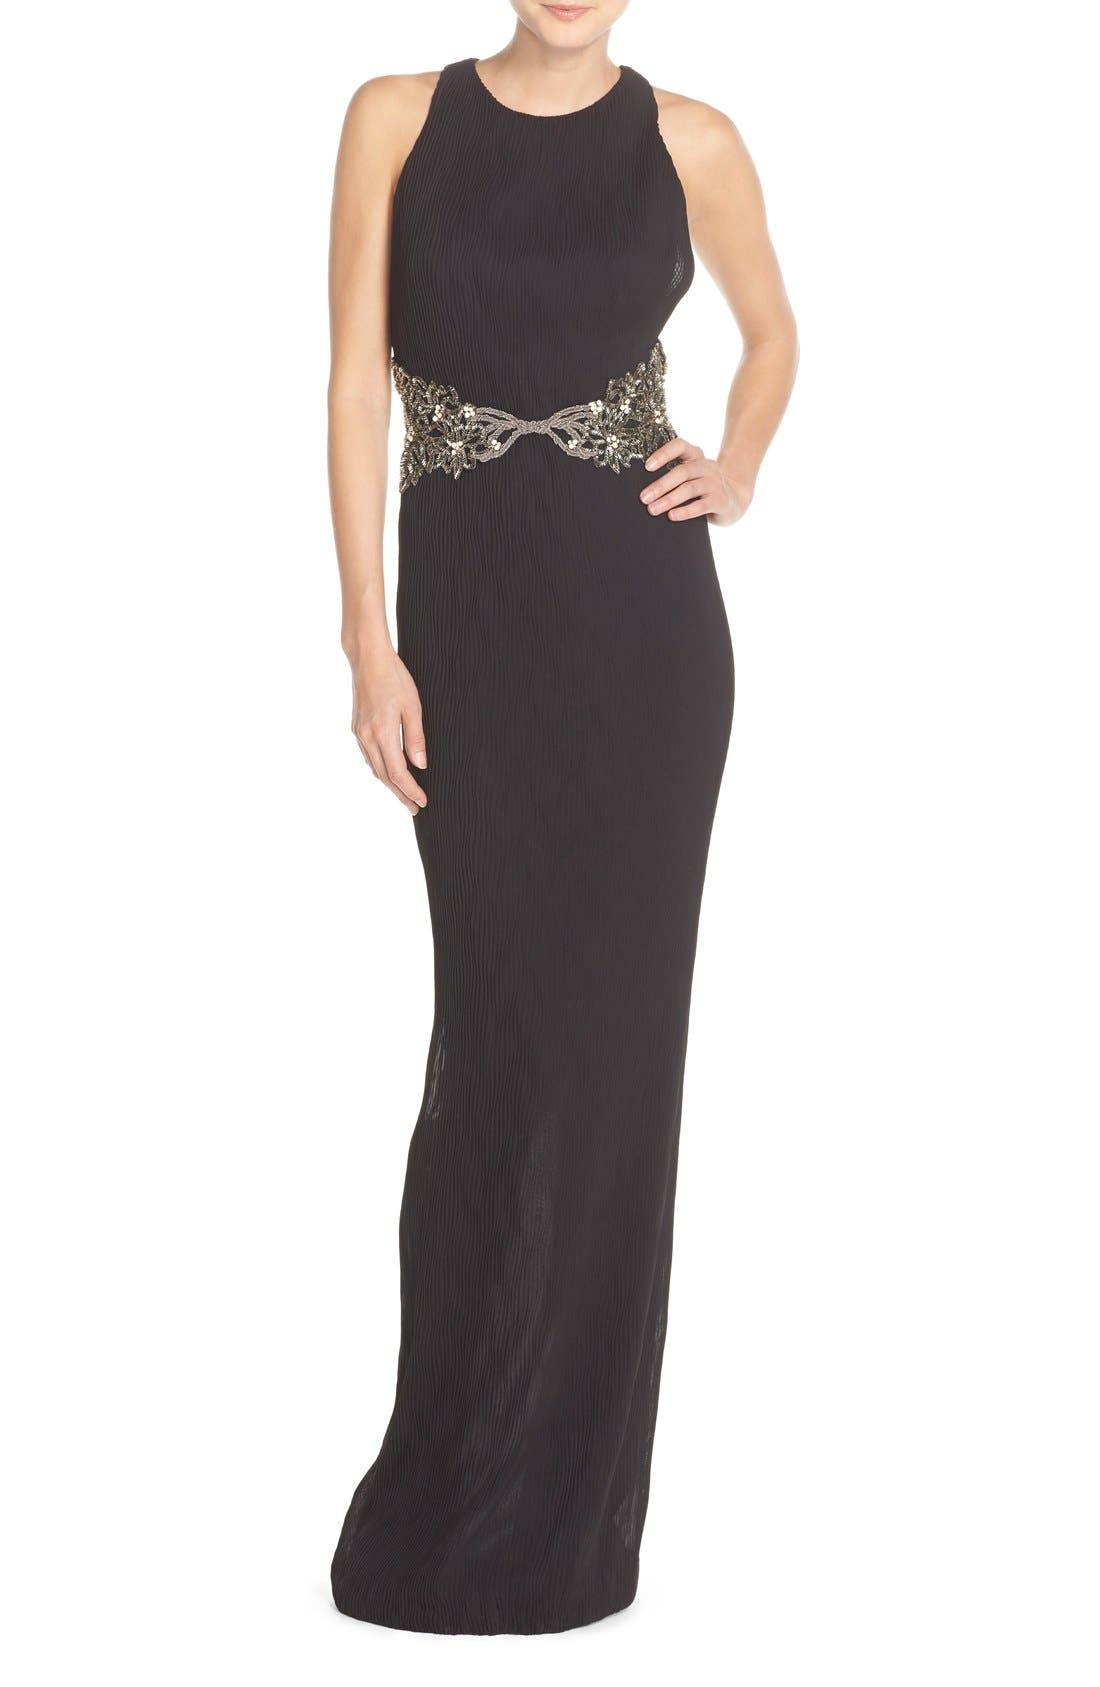 Main Image - Badgley Mischka Embellished Pleat Racerback Gown